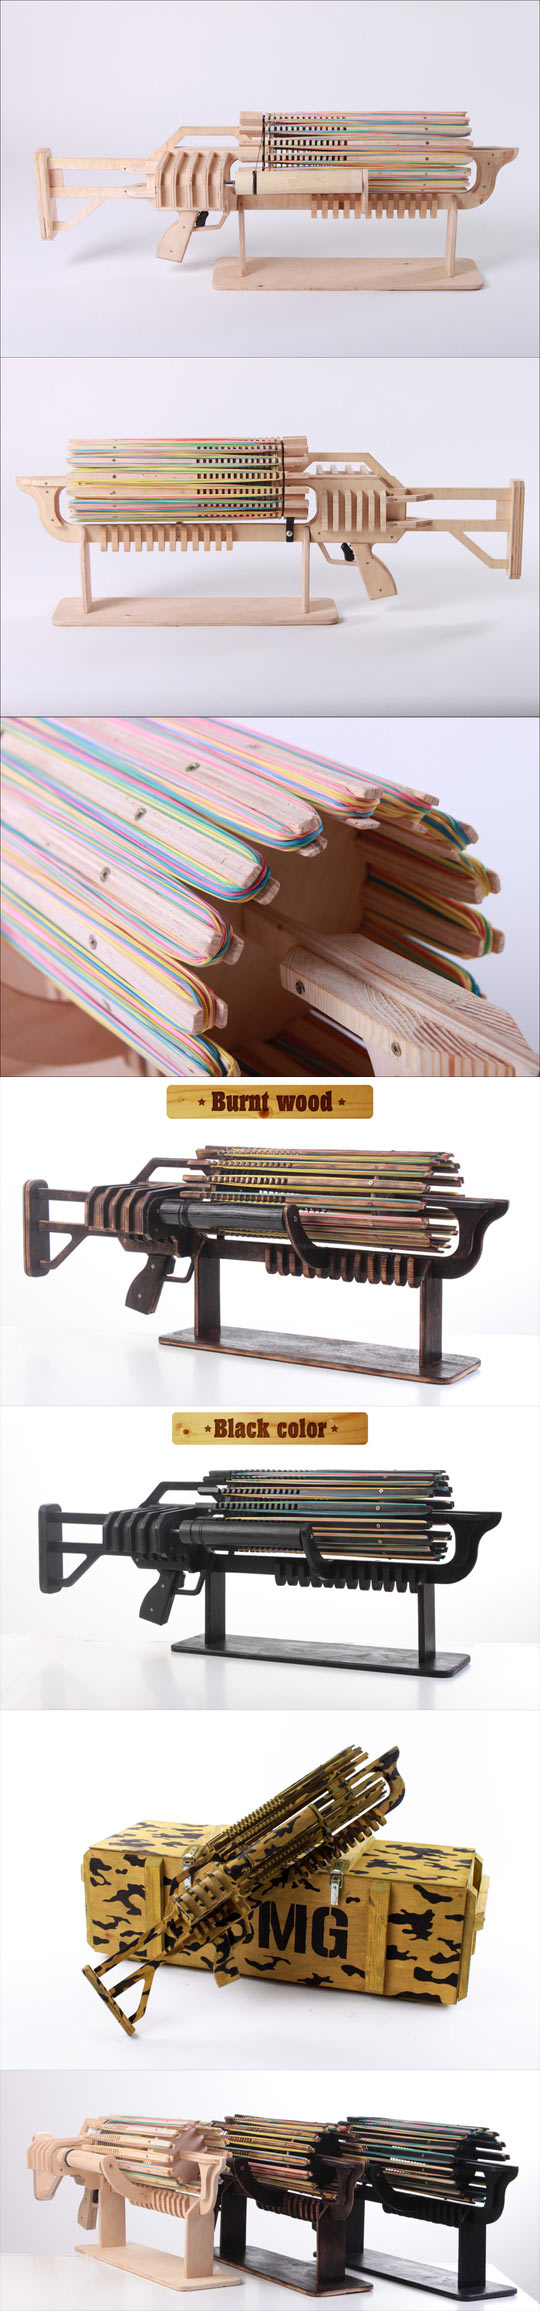 funny-gif-rubber-band-machine-wood